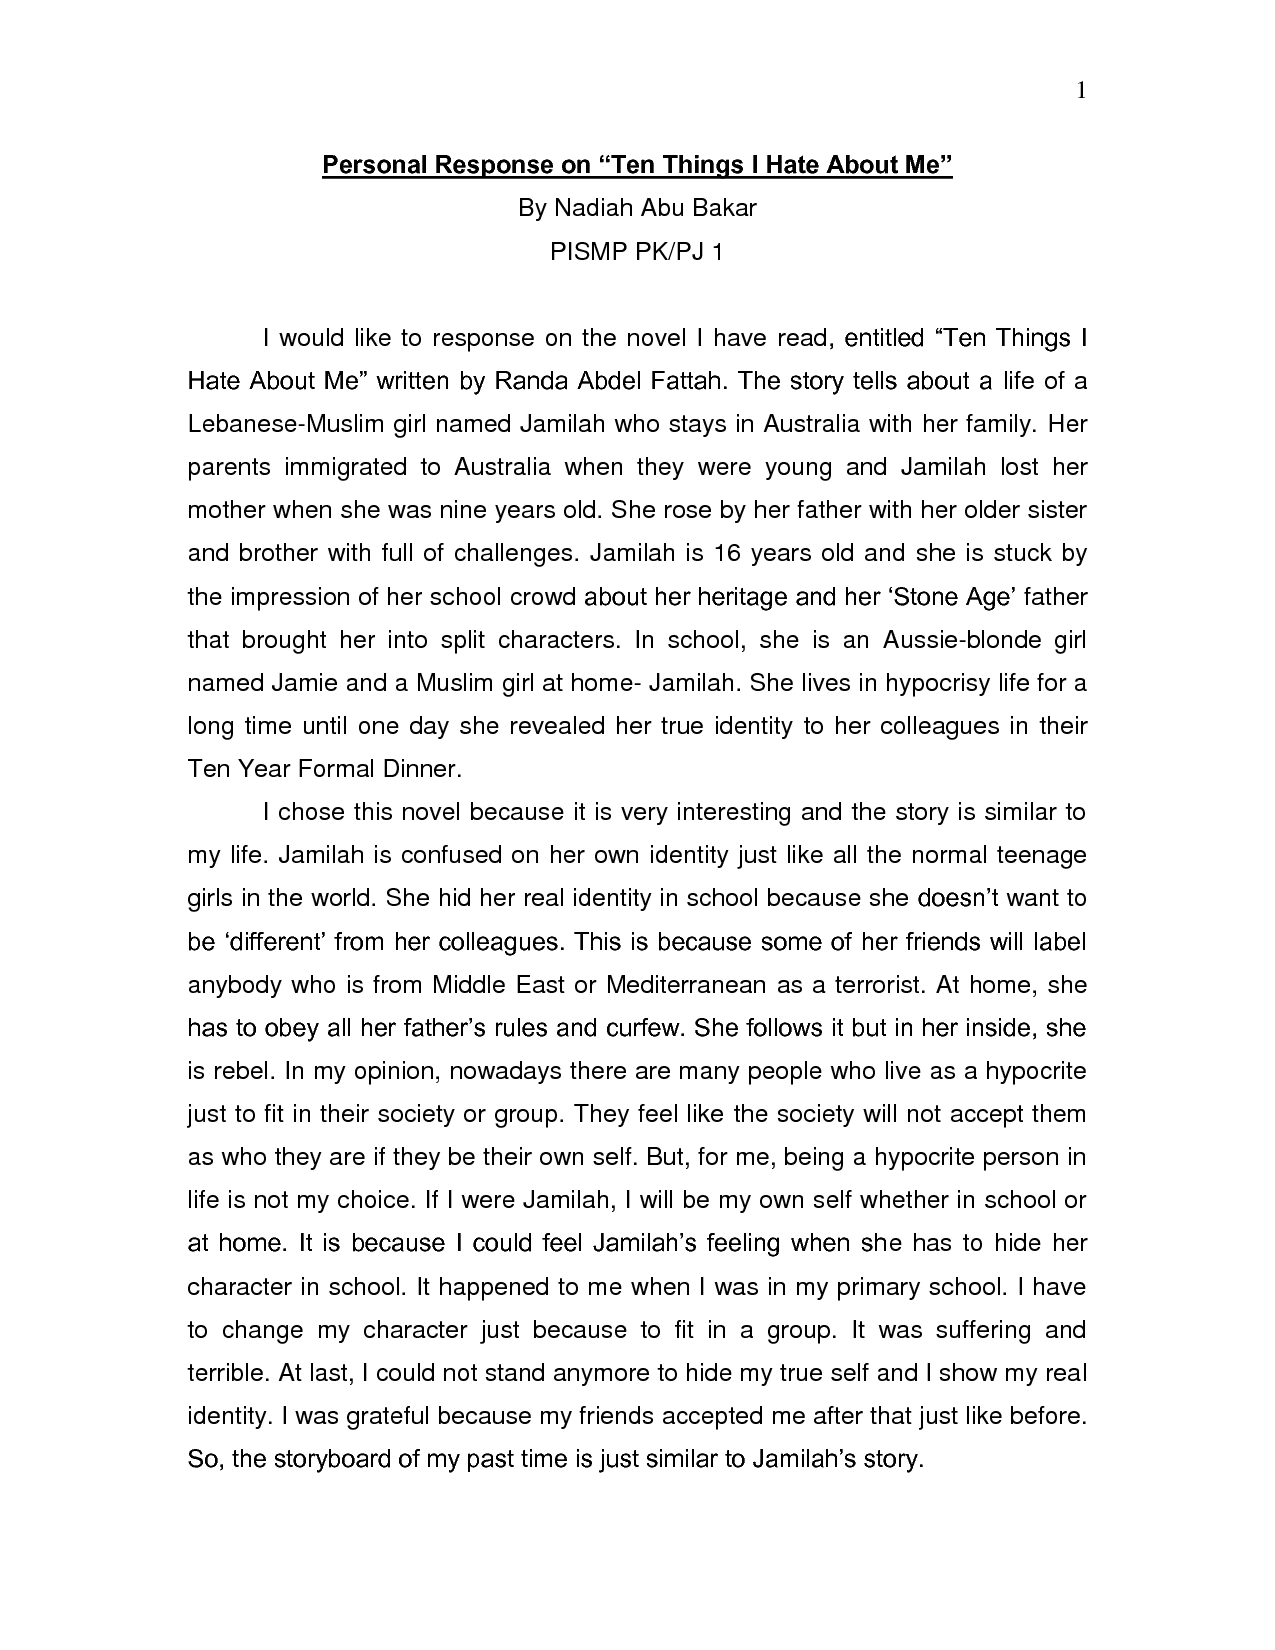 002 Reflective Essays Essay Example Writing Write Best Guide Mp9fs In The First Person About My Course Reflection Class Skills Tips Your Magnificent By Manzoor Mirza Pdf Analysis Definition Style Full